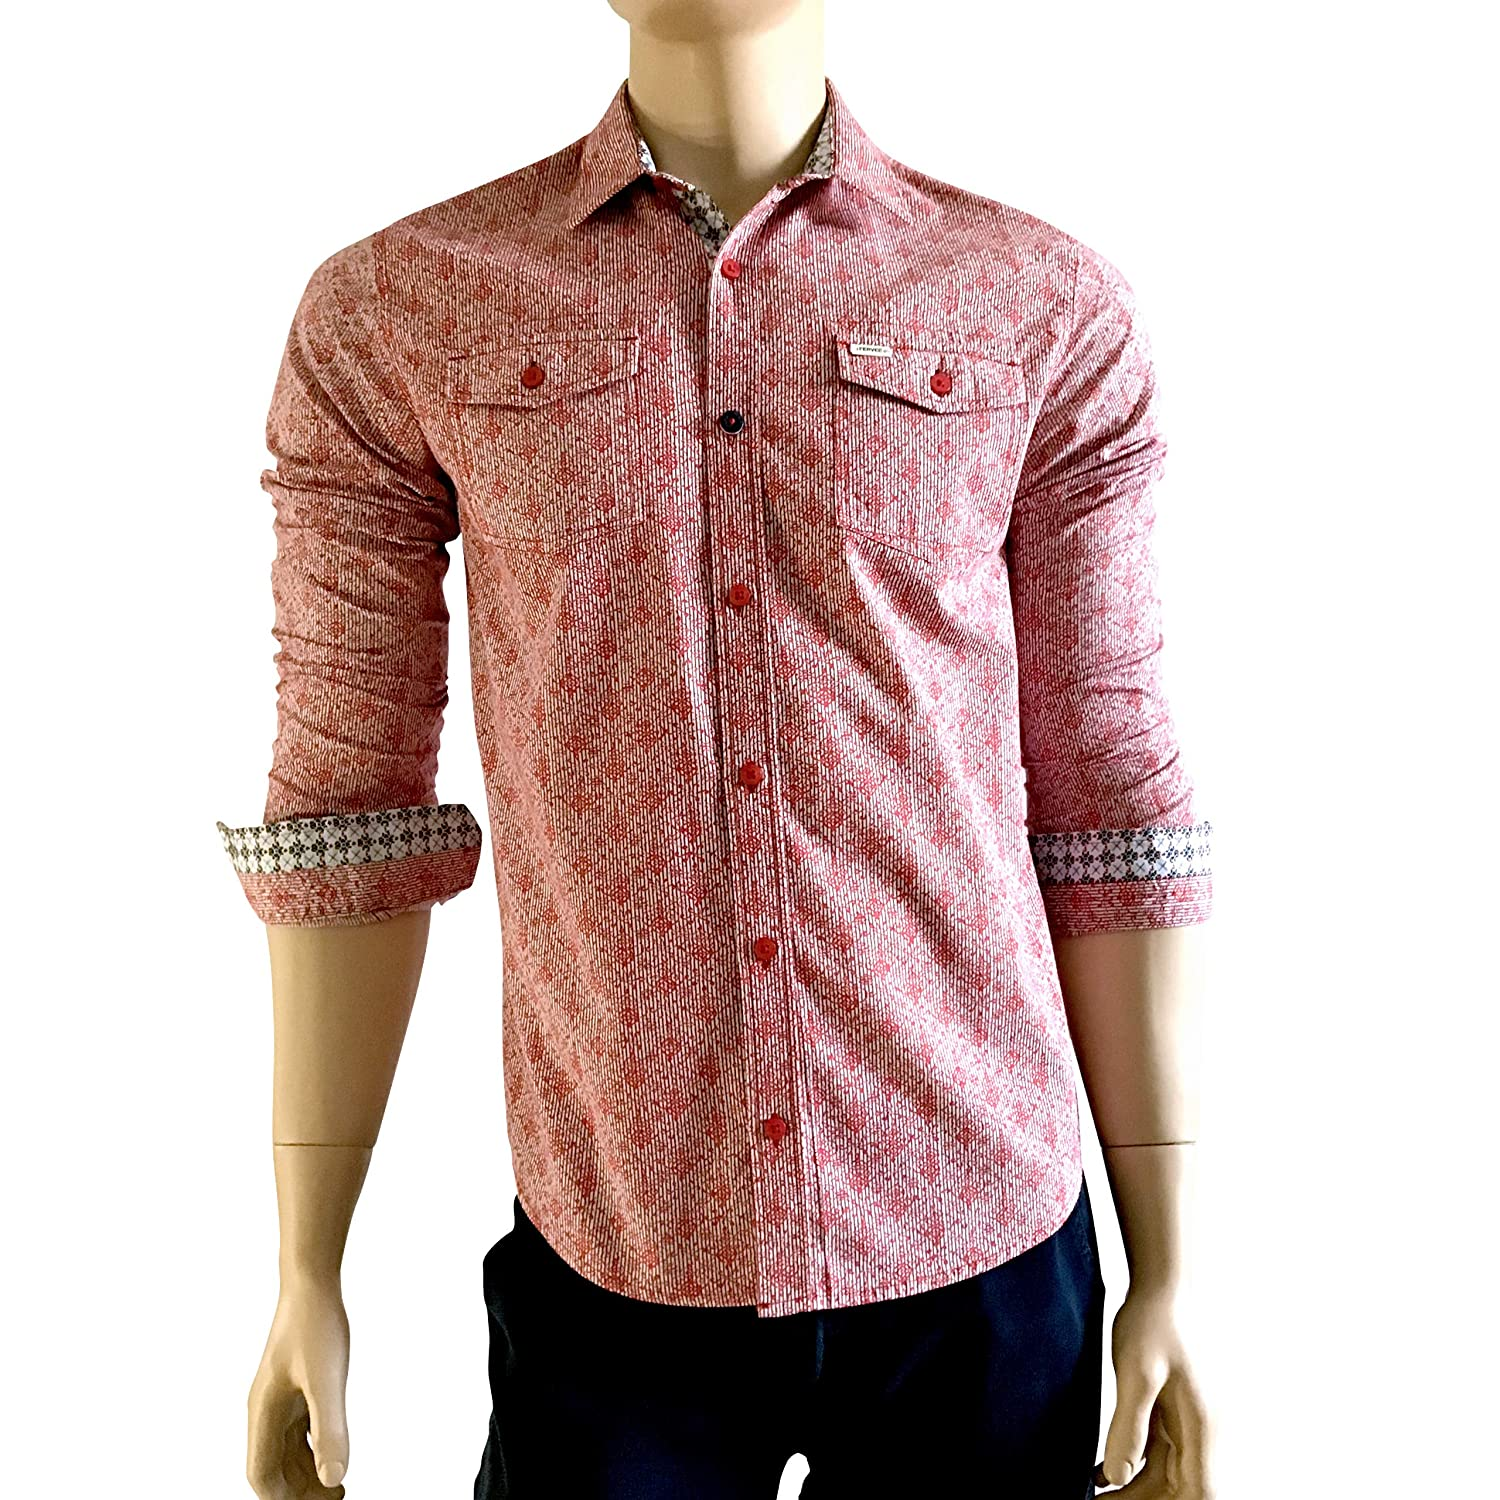 Fervel Mens Slim-Fit Long Sleeve Shirt Printed Pink Cotton Nacre Buttons (L) (S) at Amazon Mens Clothing store: